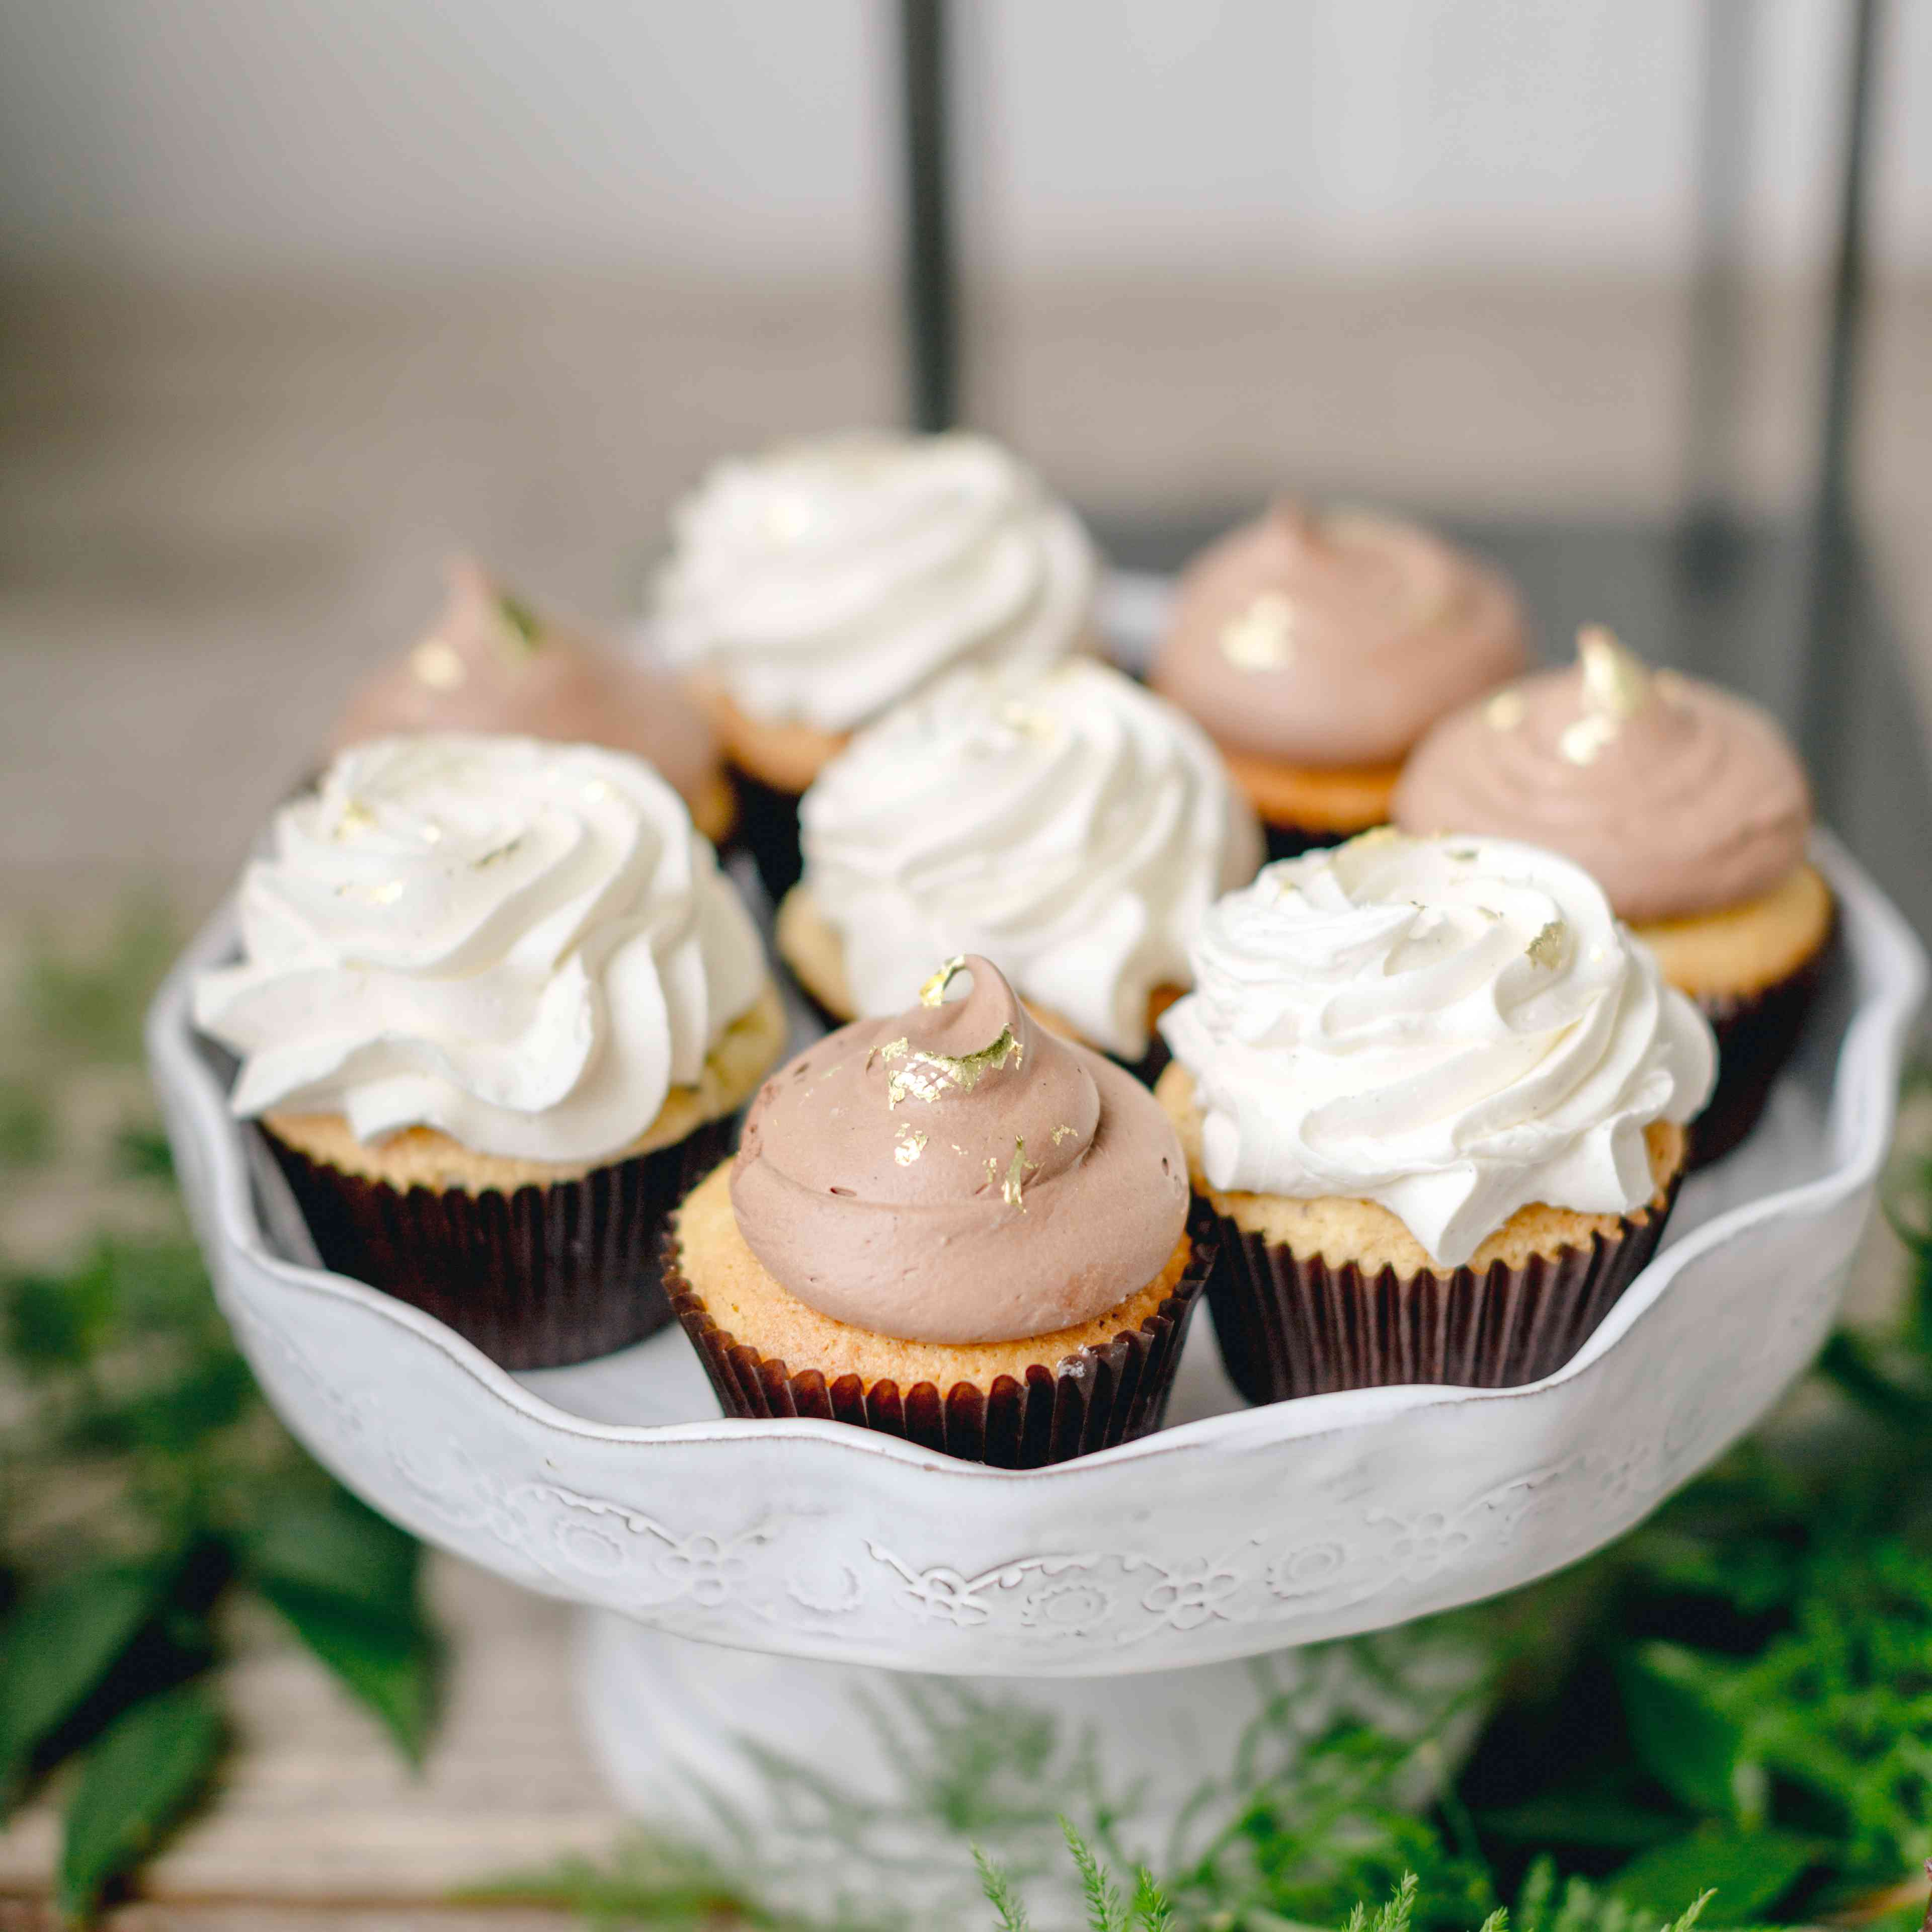 cupcakes with gold detailing